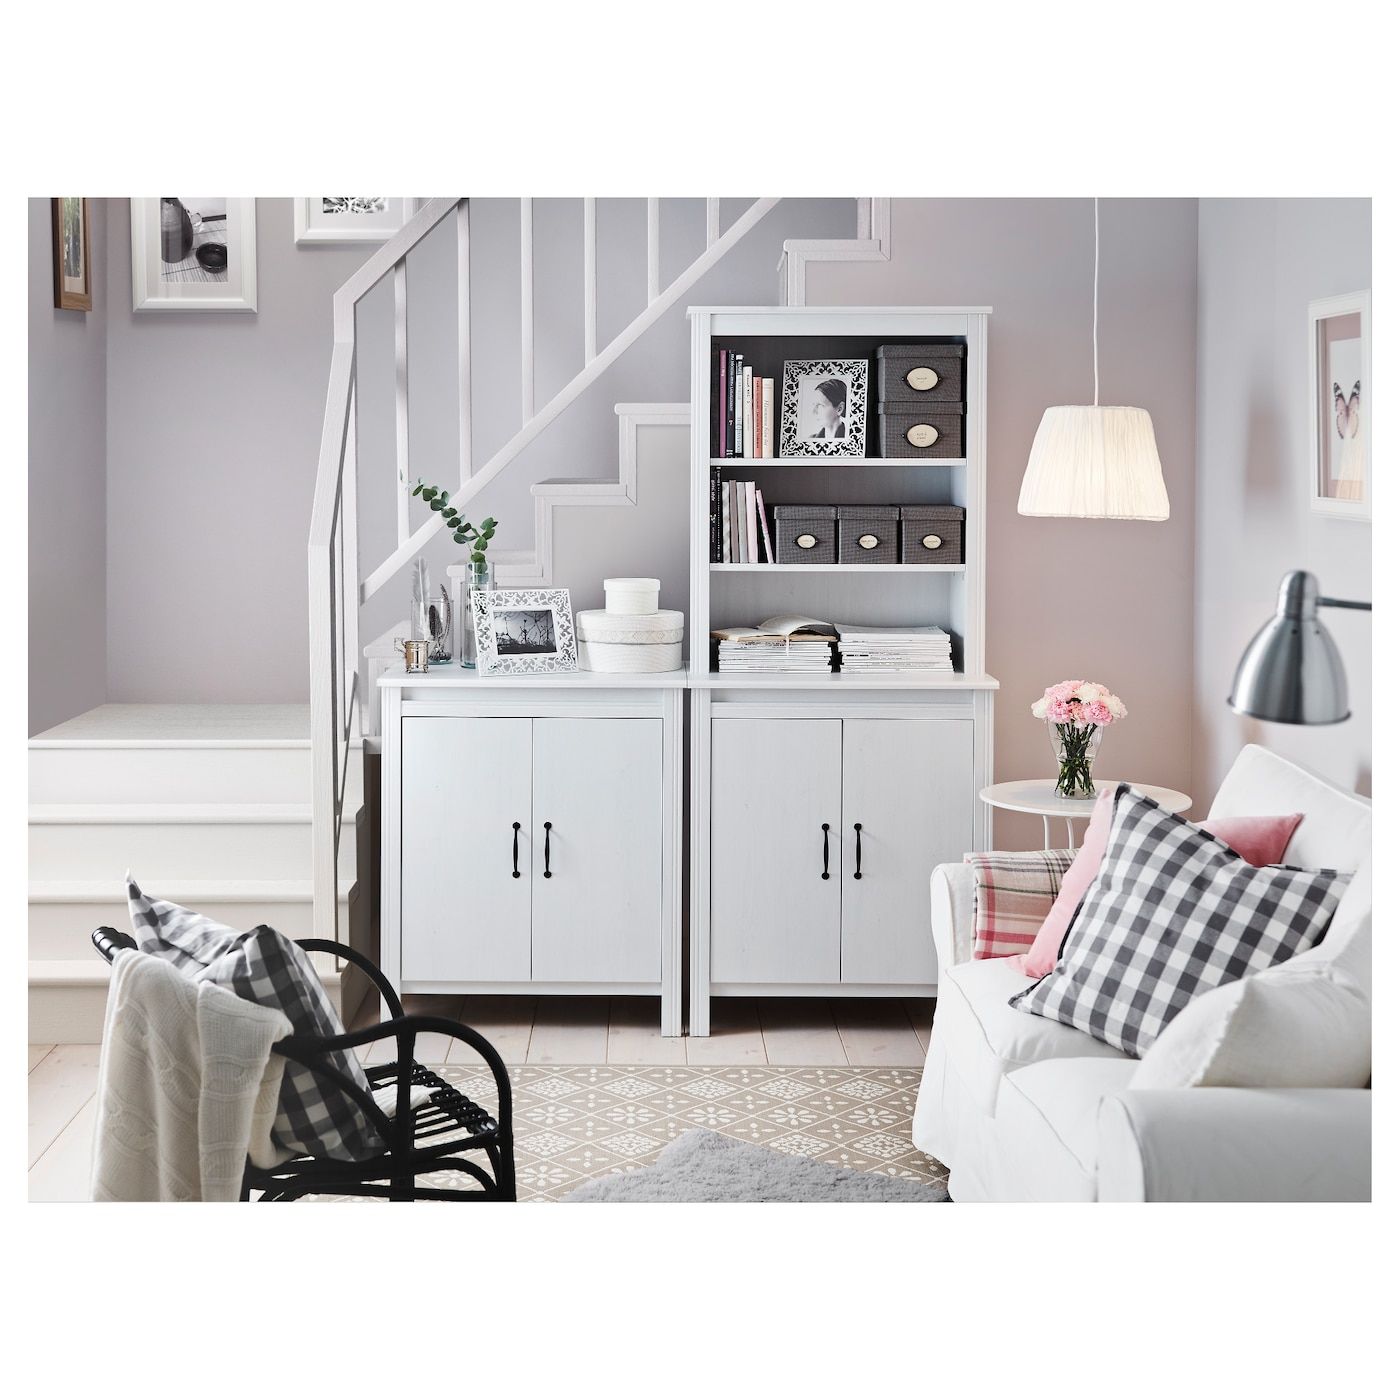 IKEA BRUSALI High Cabinet With Door Adjustable Shelves, So You Can  Customise Your Storage As Part 62